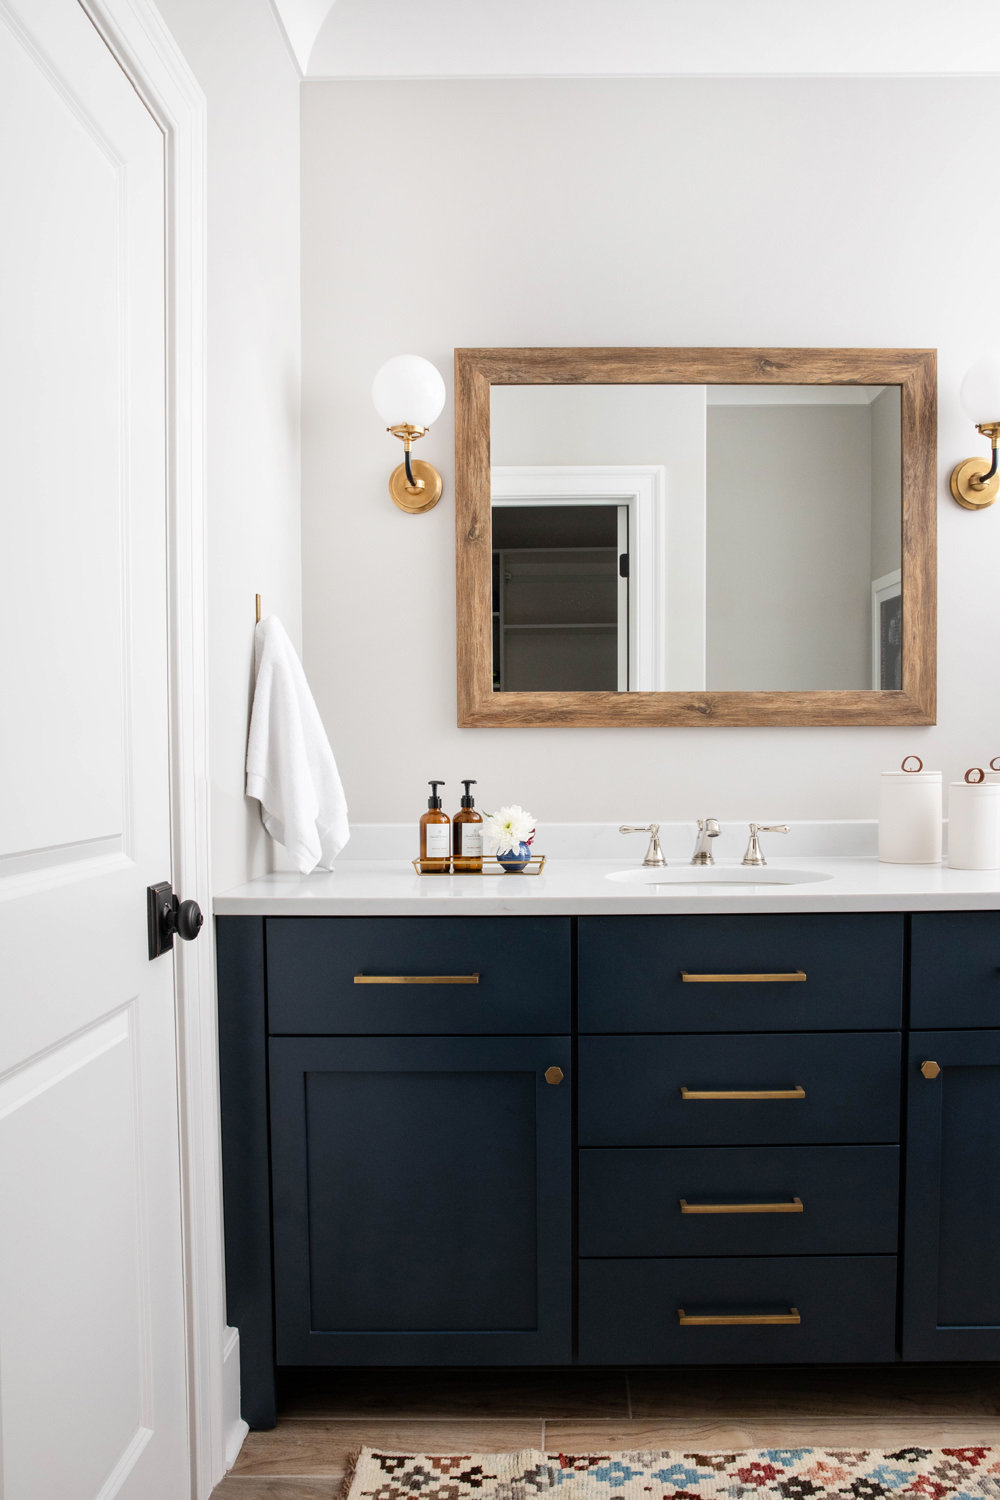 Benjamin-Moore-Blue-Note-Vanity-with-Brass-Hardware-and-Circa-Lighting-Sconce-1